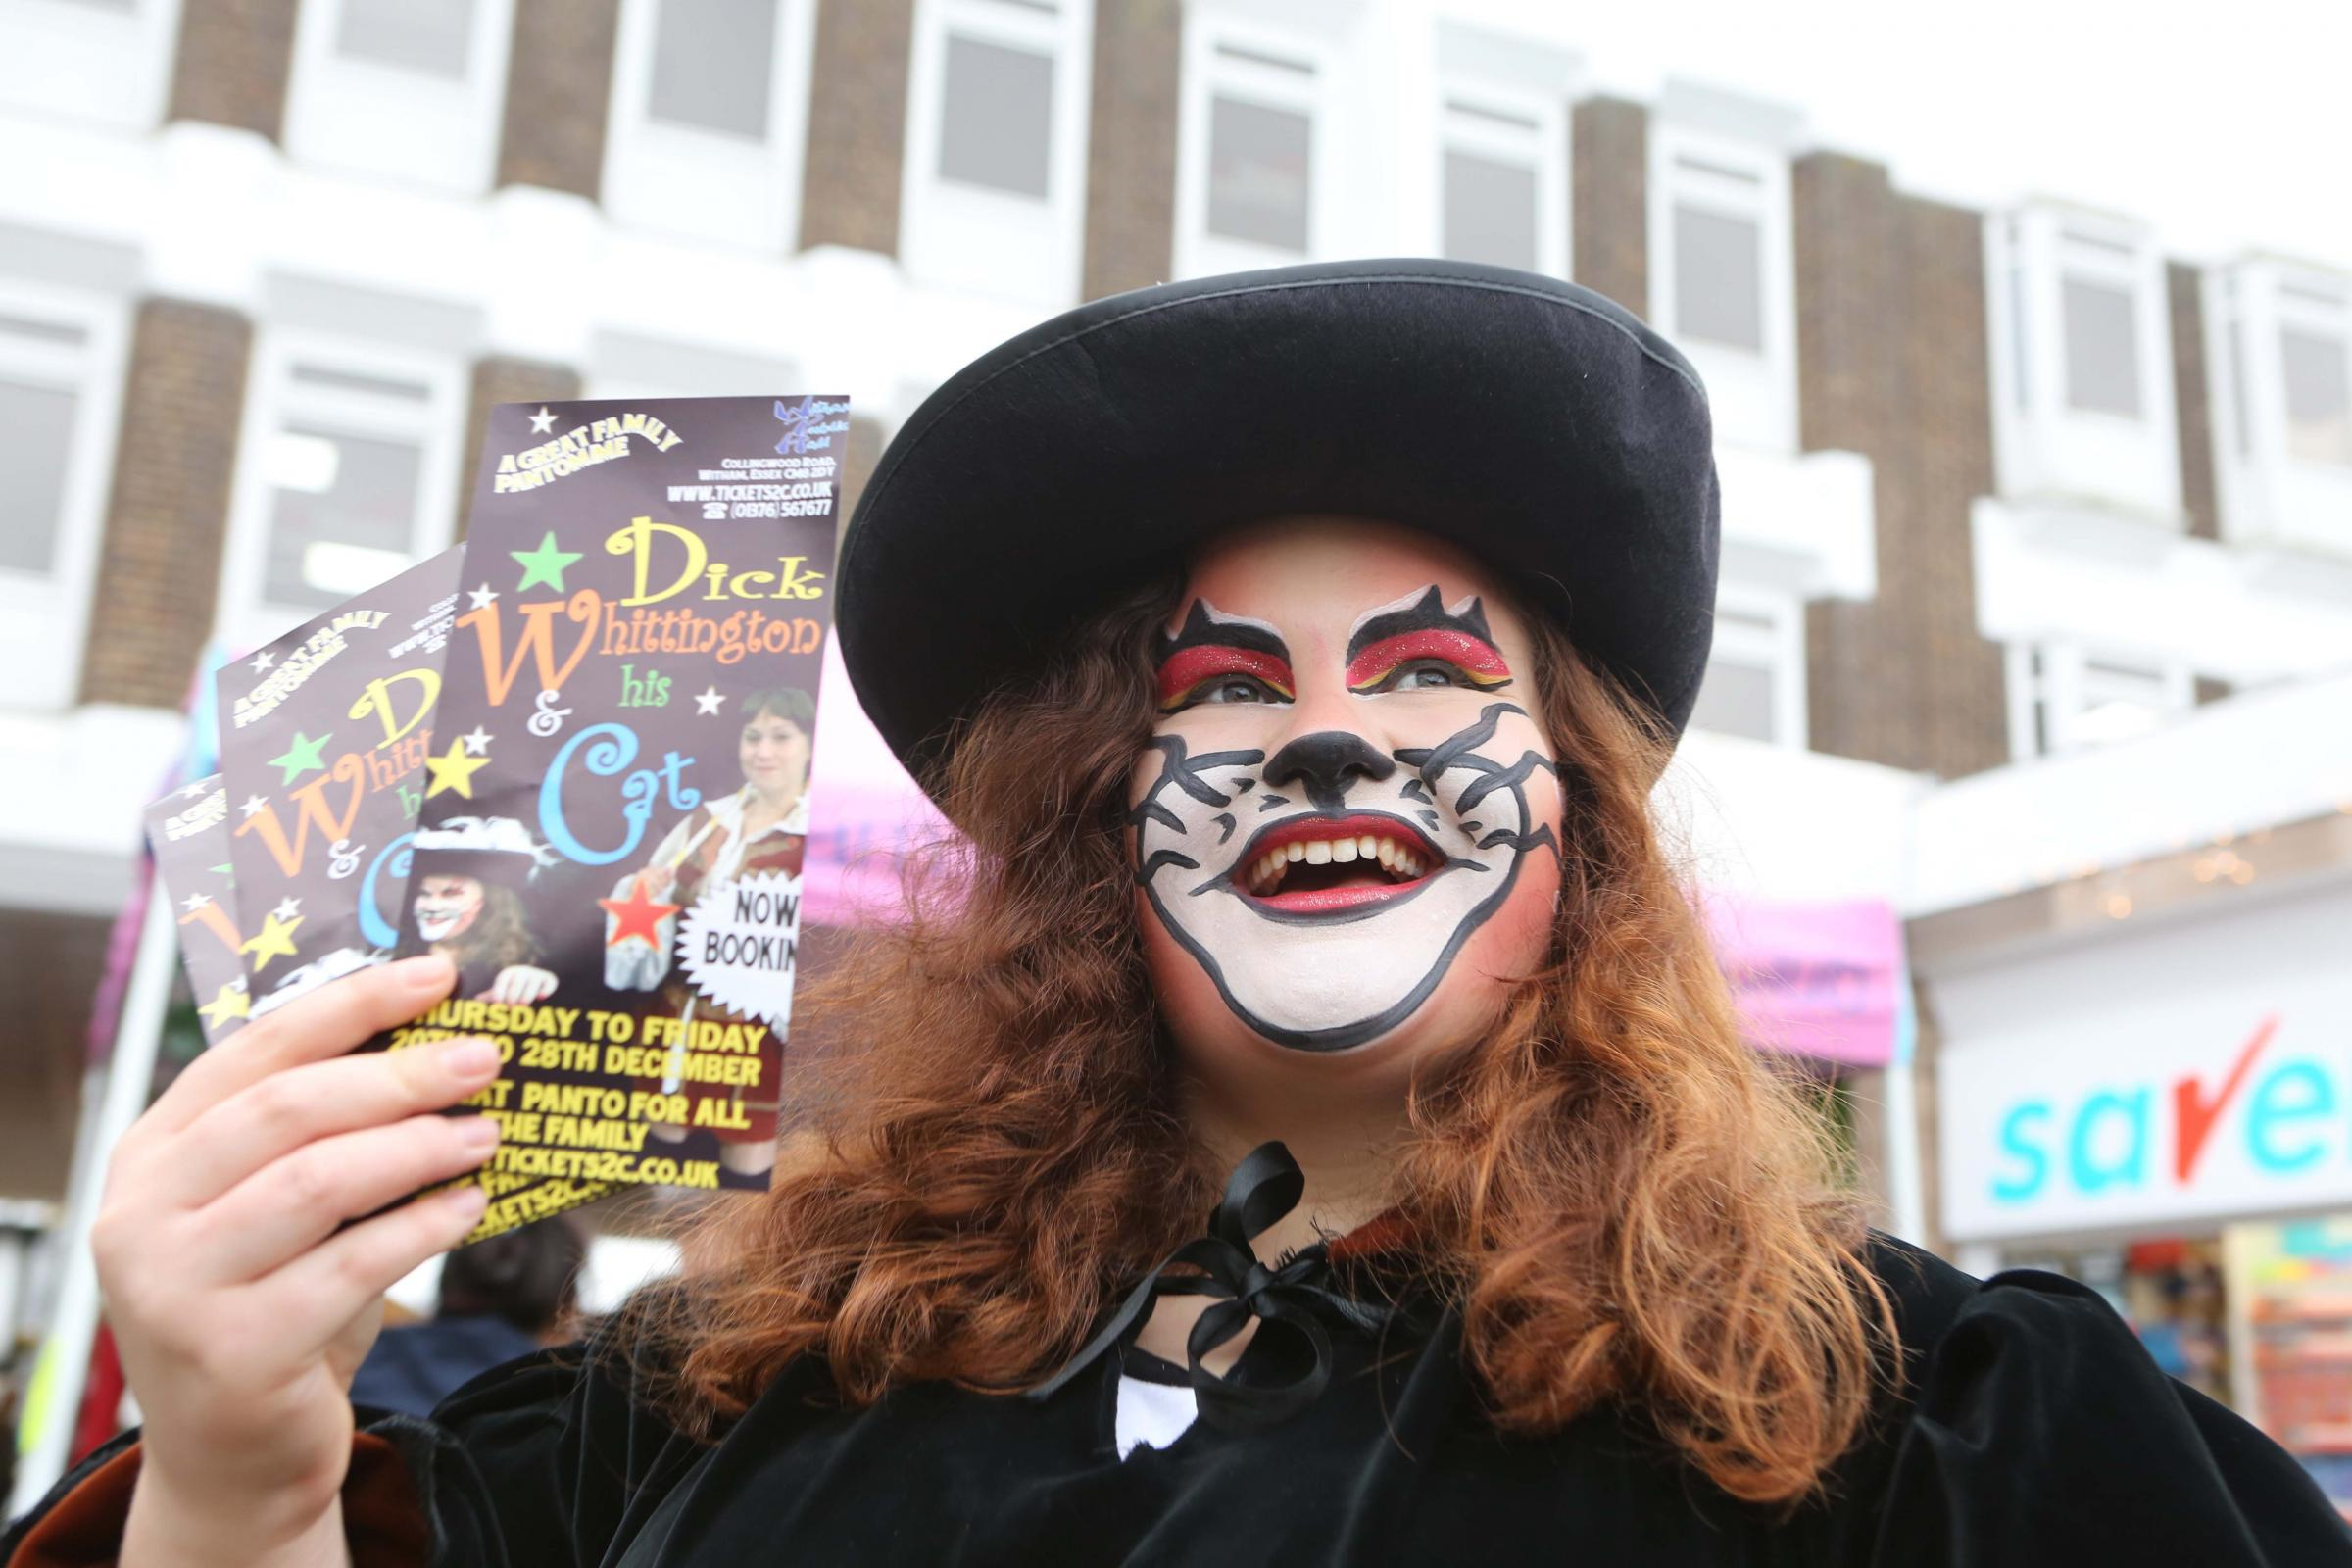 Annual Dickensian Christmas Market in Witham Town Centre, before lights switch on. Lily Downs as Cat from Dick Whittington